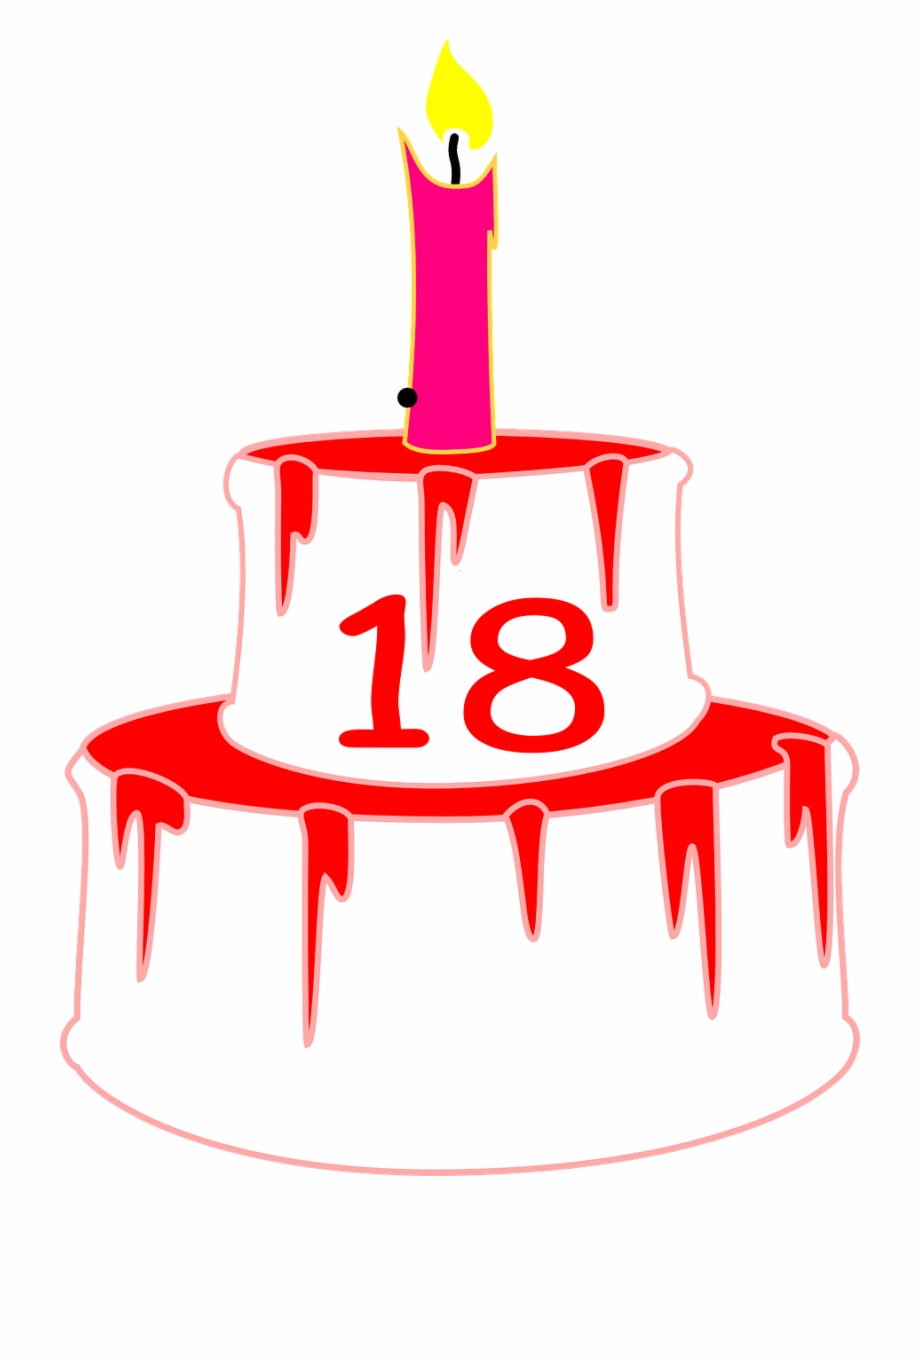 18th Birthday Cake Png Free PNG Images & Clipart Download #4855563.